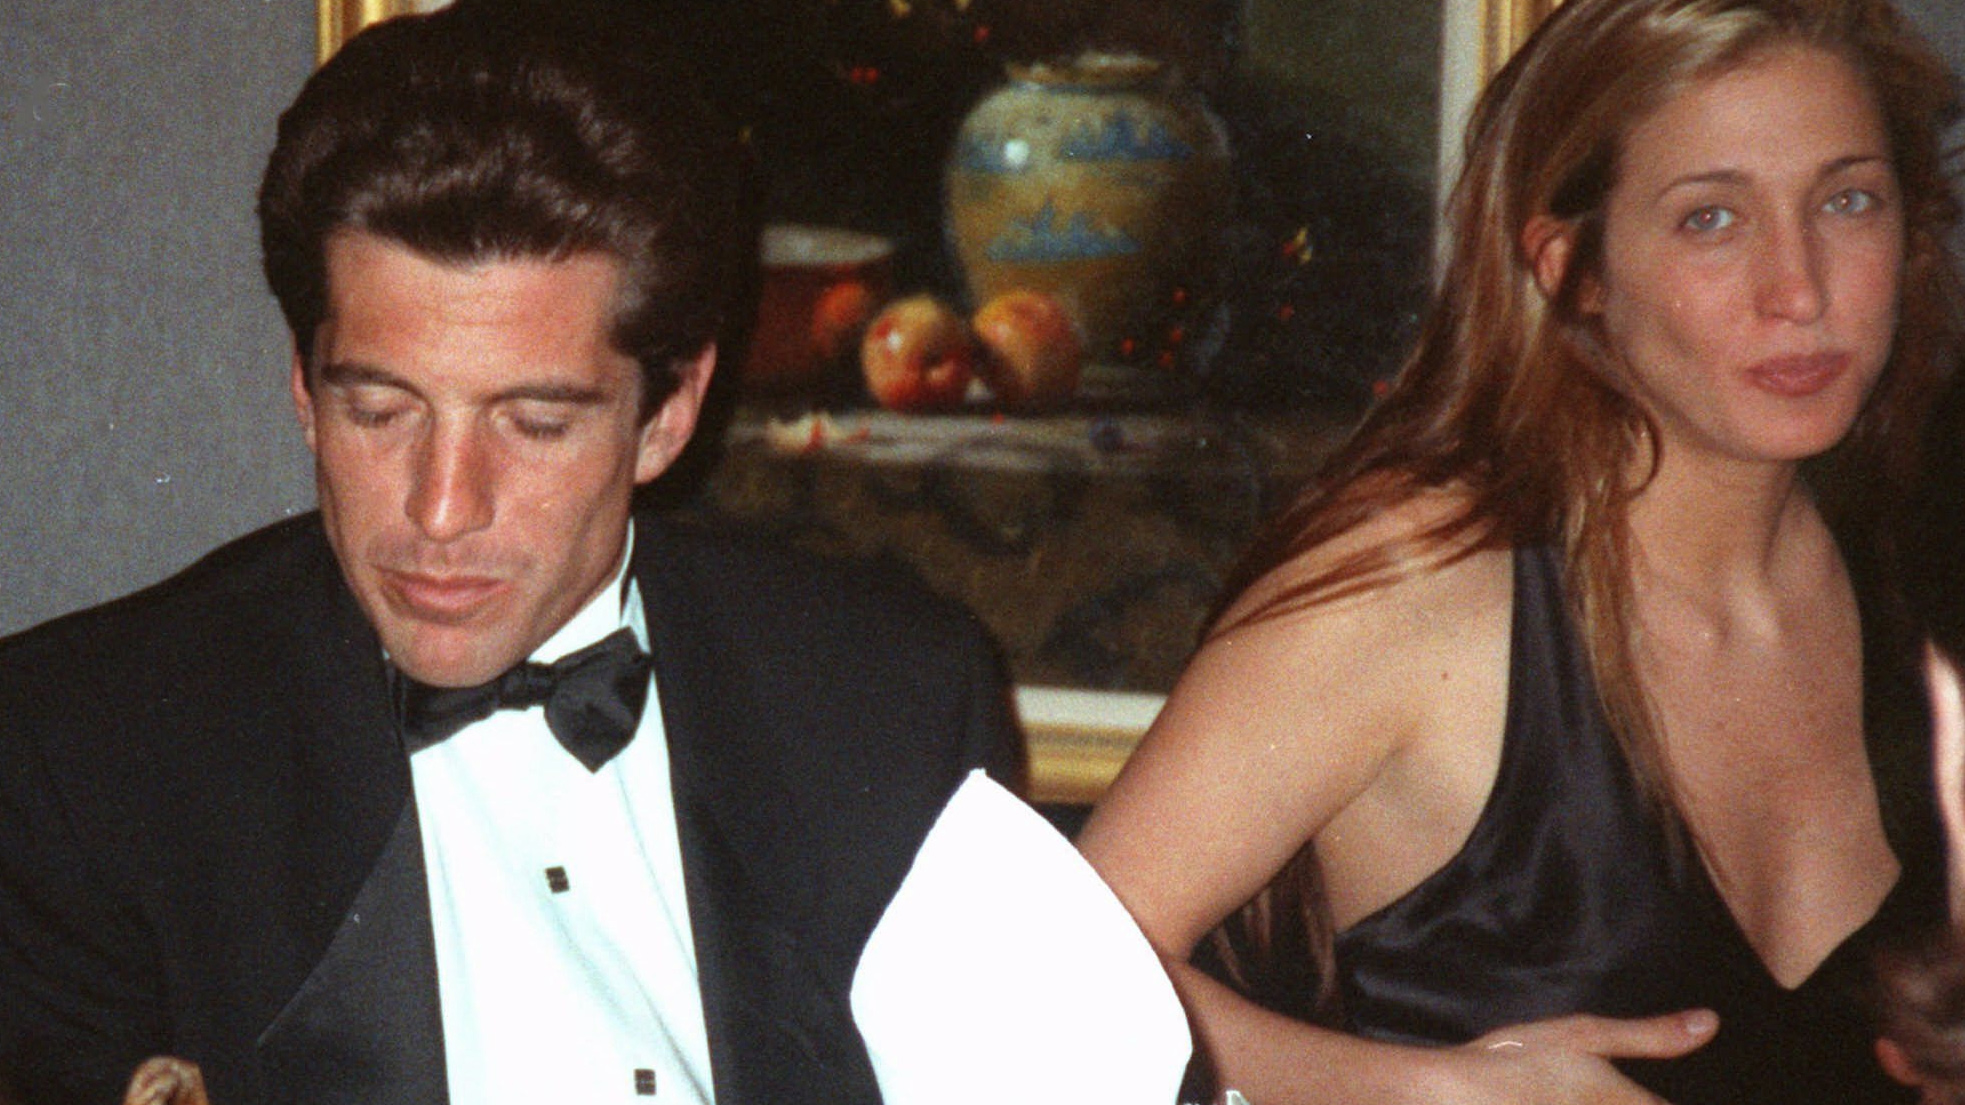 John F. Kennedy, Jr., and his wife Carolyn Bessette pictured before their wedding in 1995.